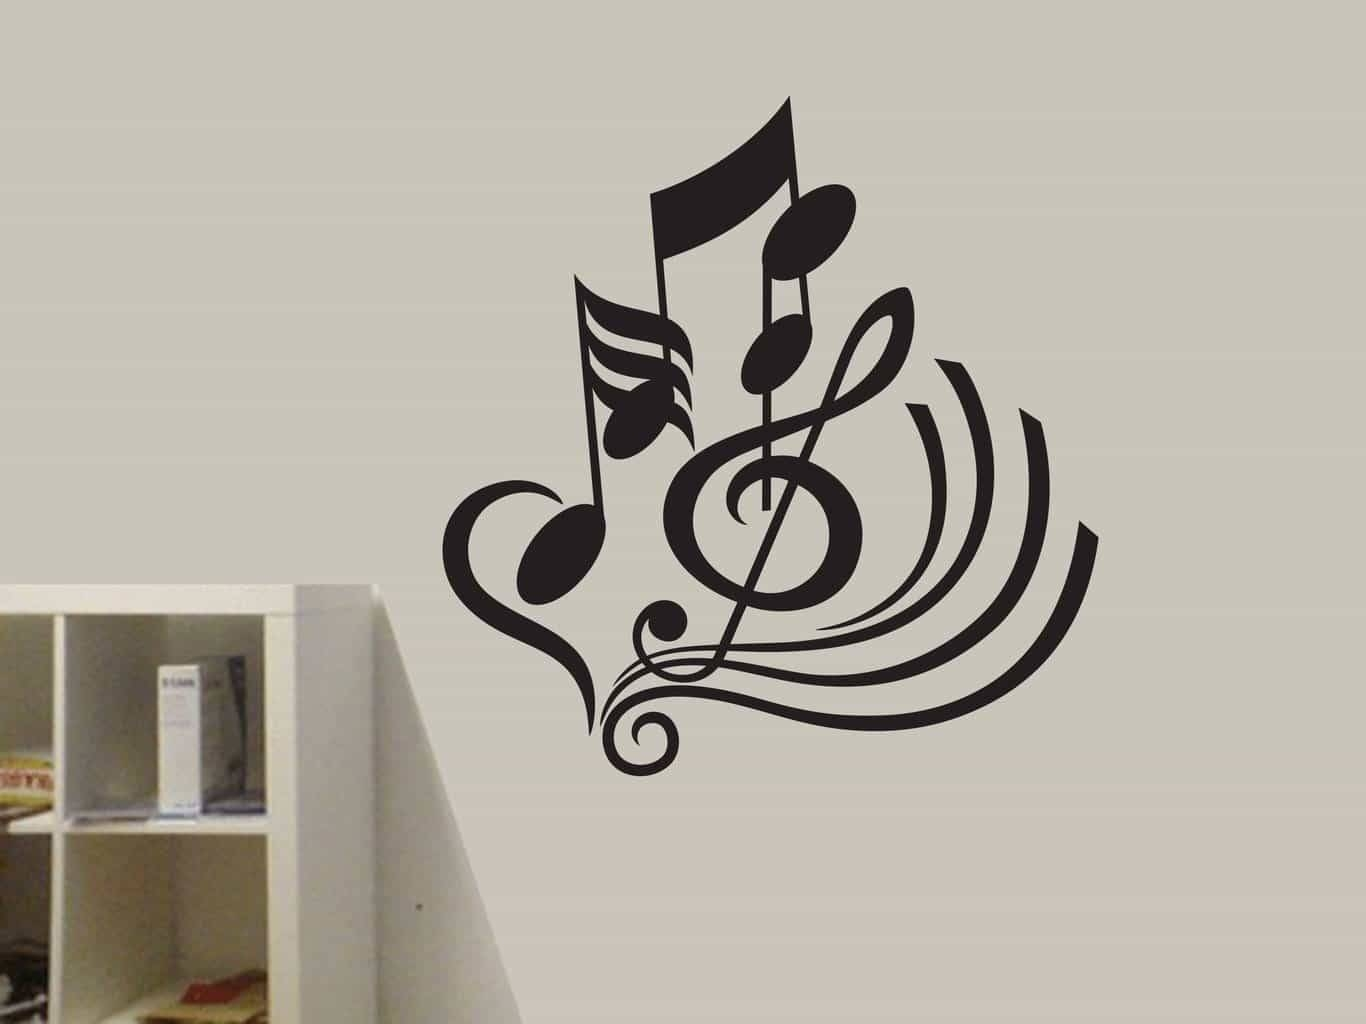 Musical Notes Wall Art Decal Sticker With Latest Music Note Wall Art (View 17 of 20)